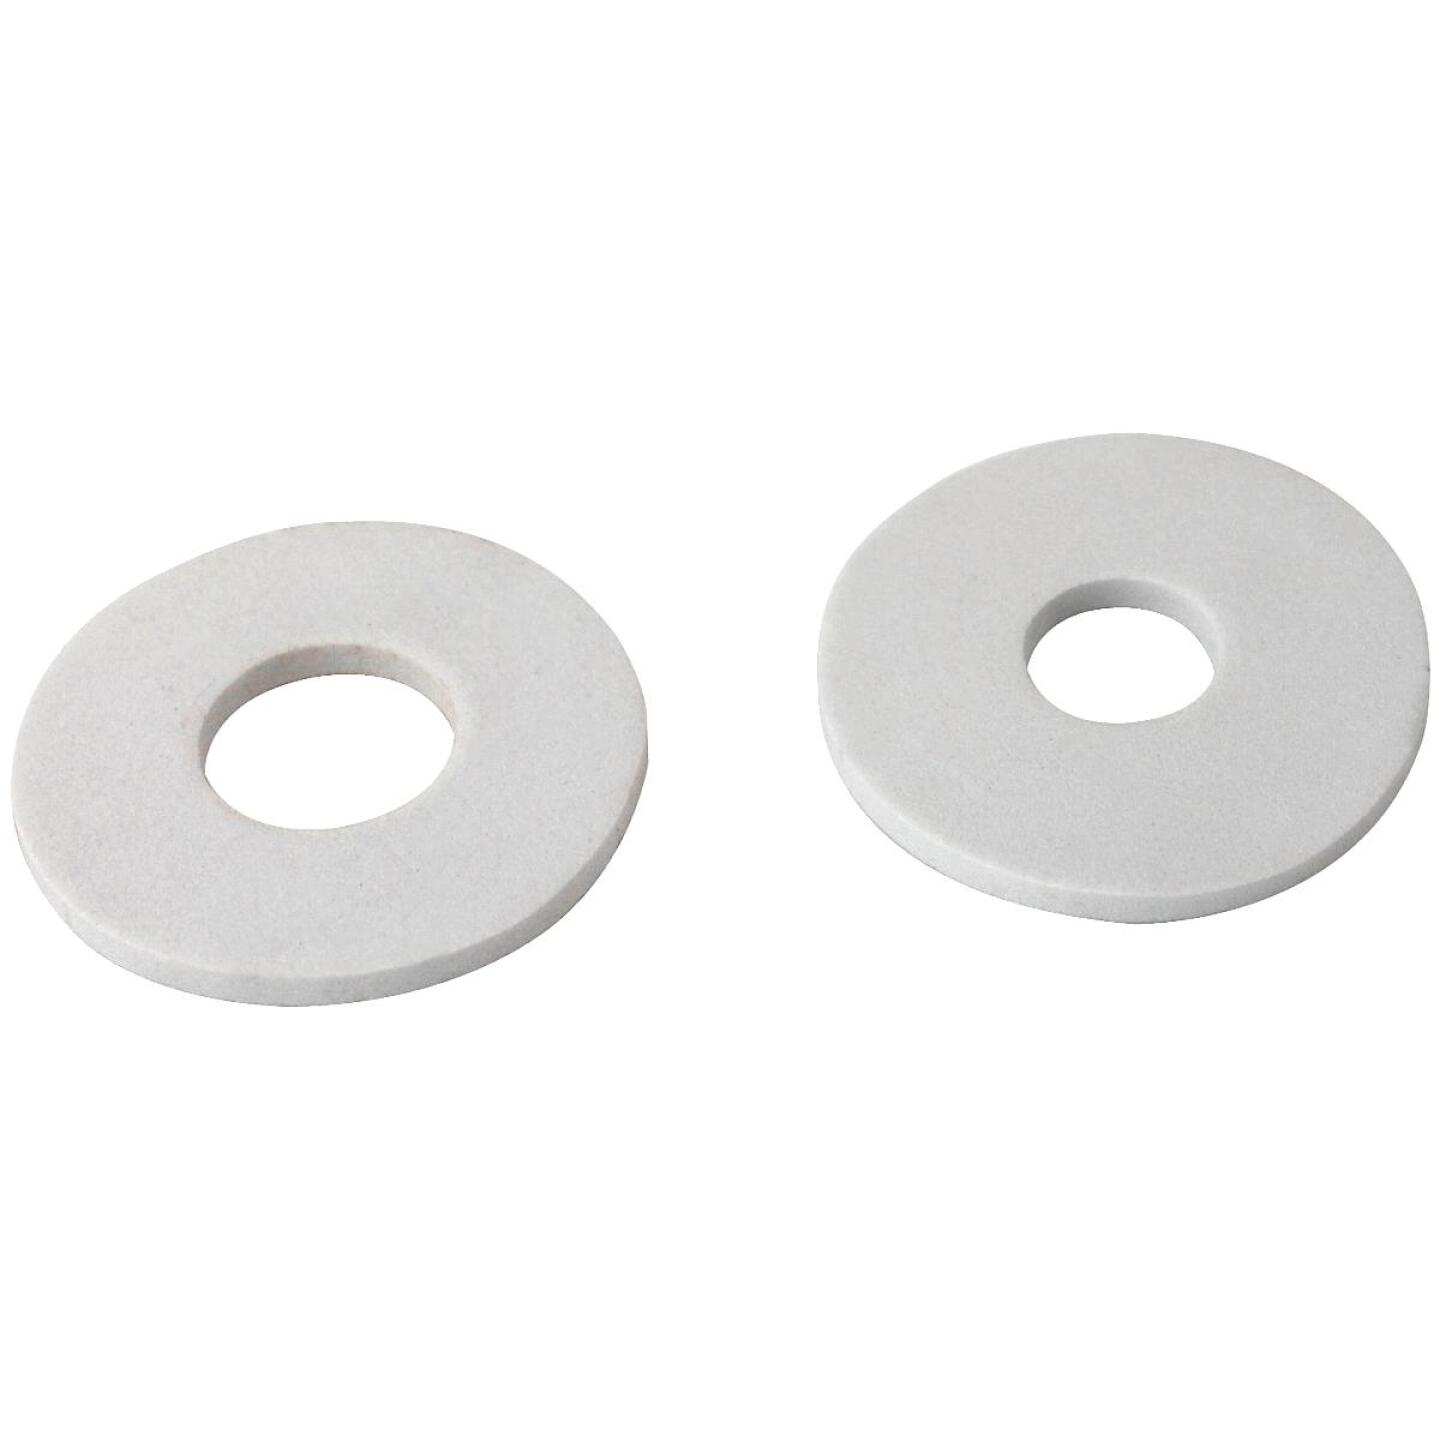 Keeney Plumber's Patch White Faucet Cover-Up Plate (2-Pack) Image 1